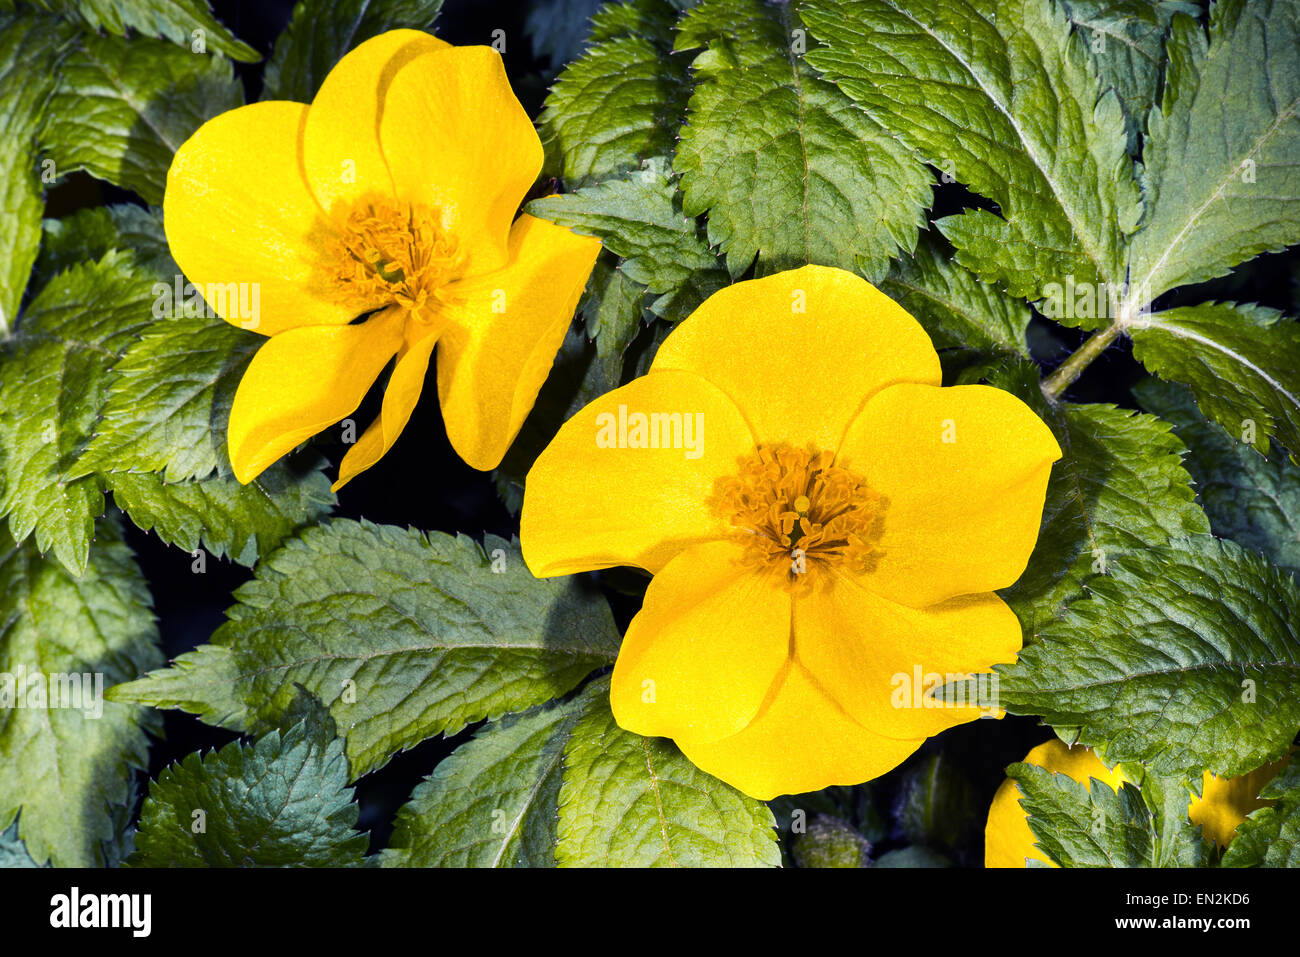 Flower marigold flower yellow blooming spring green leaves for Perennial pond plants